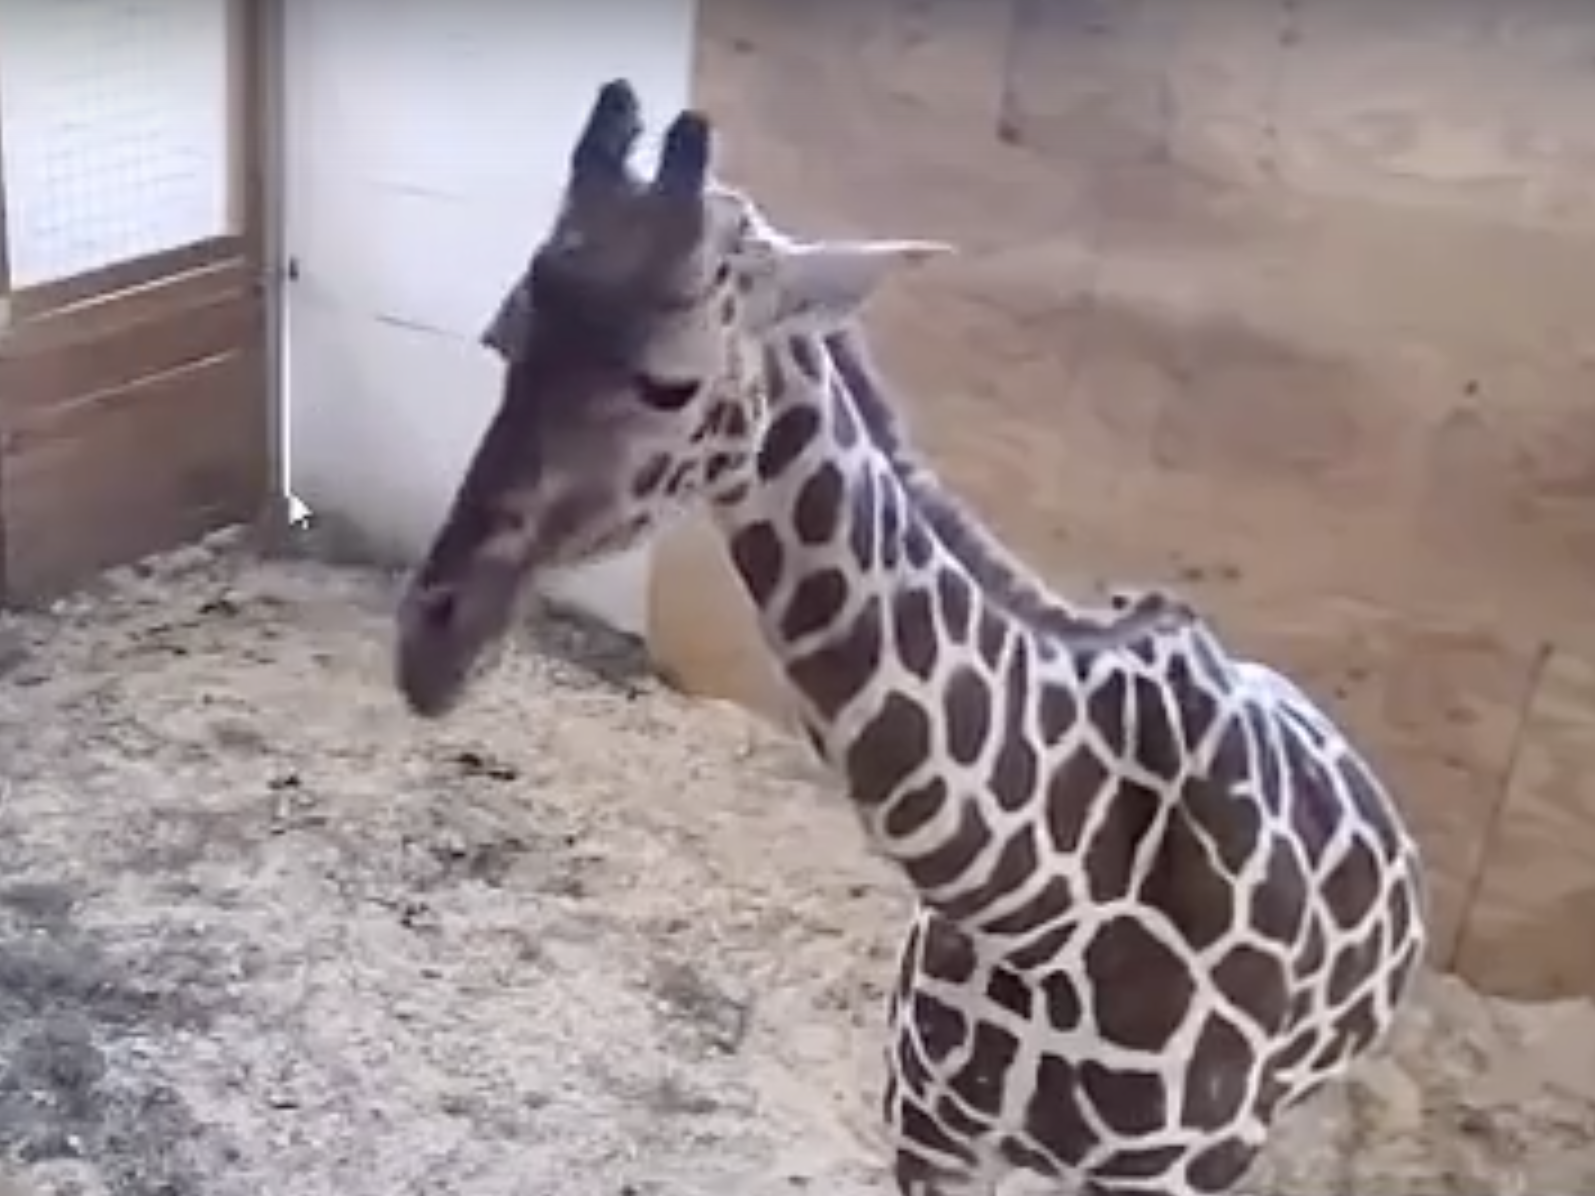 April the giraffe live cam youtube - 1595 X 1196 Pxdoes A Pregnant Giraffe Deserve Privacy Wabe 90 1 Fm A Screen Shot From The Youtube Live Stream Video Of April The Giraffe